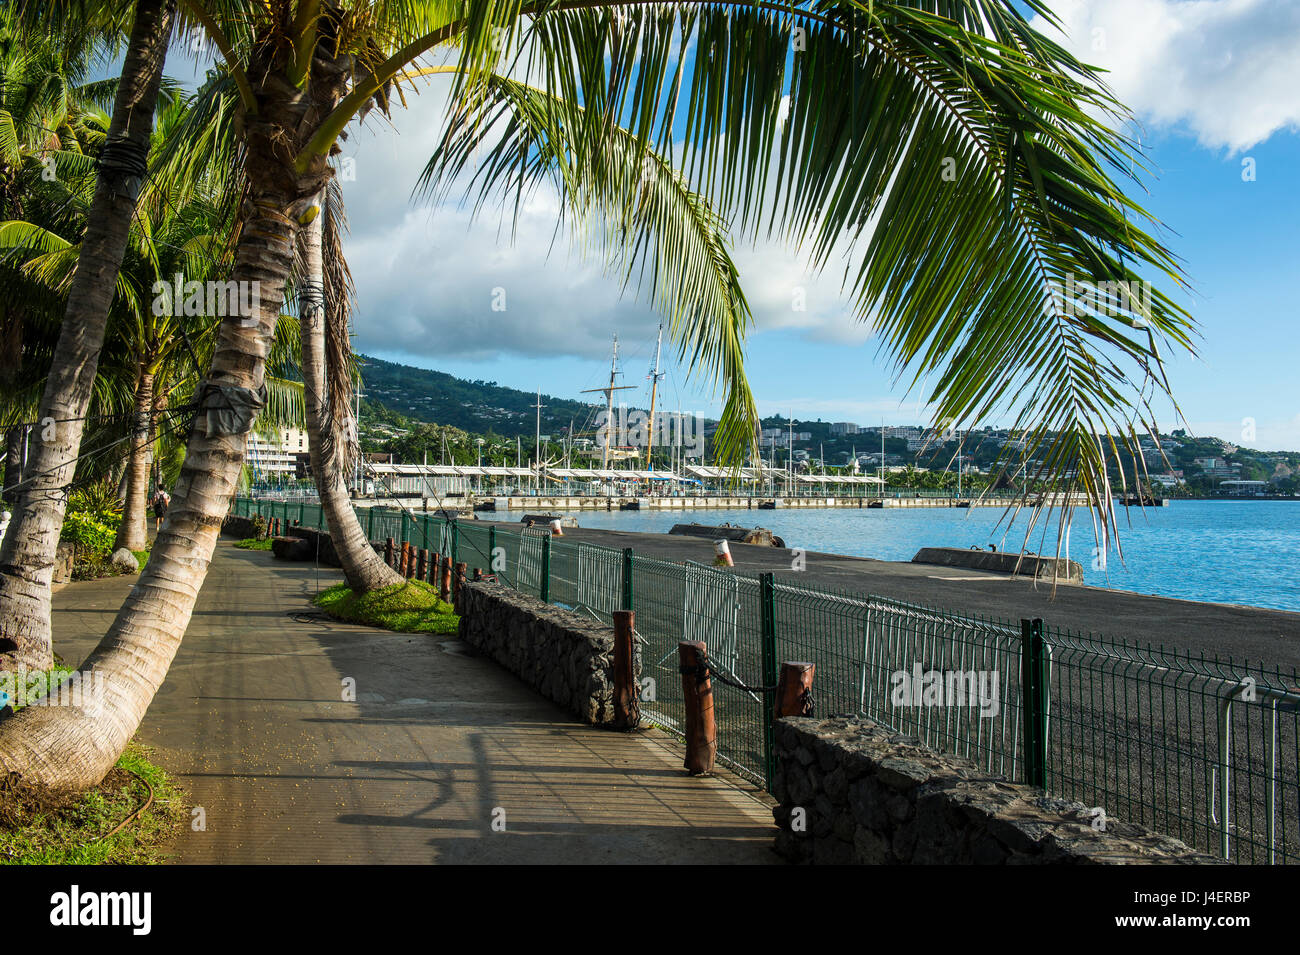 Waterfront of Papeete, Tahiti, Society Islands, French Polynesia, Pacific - Stock Image